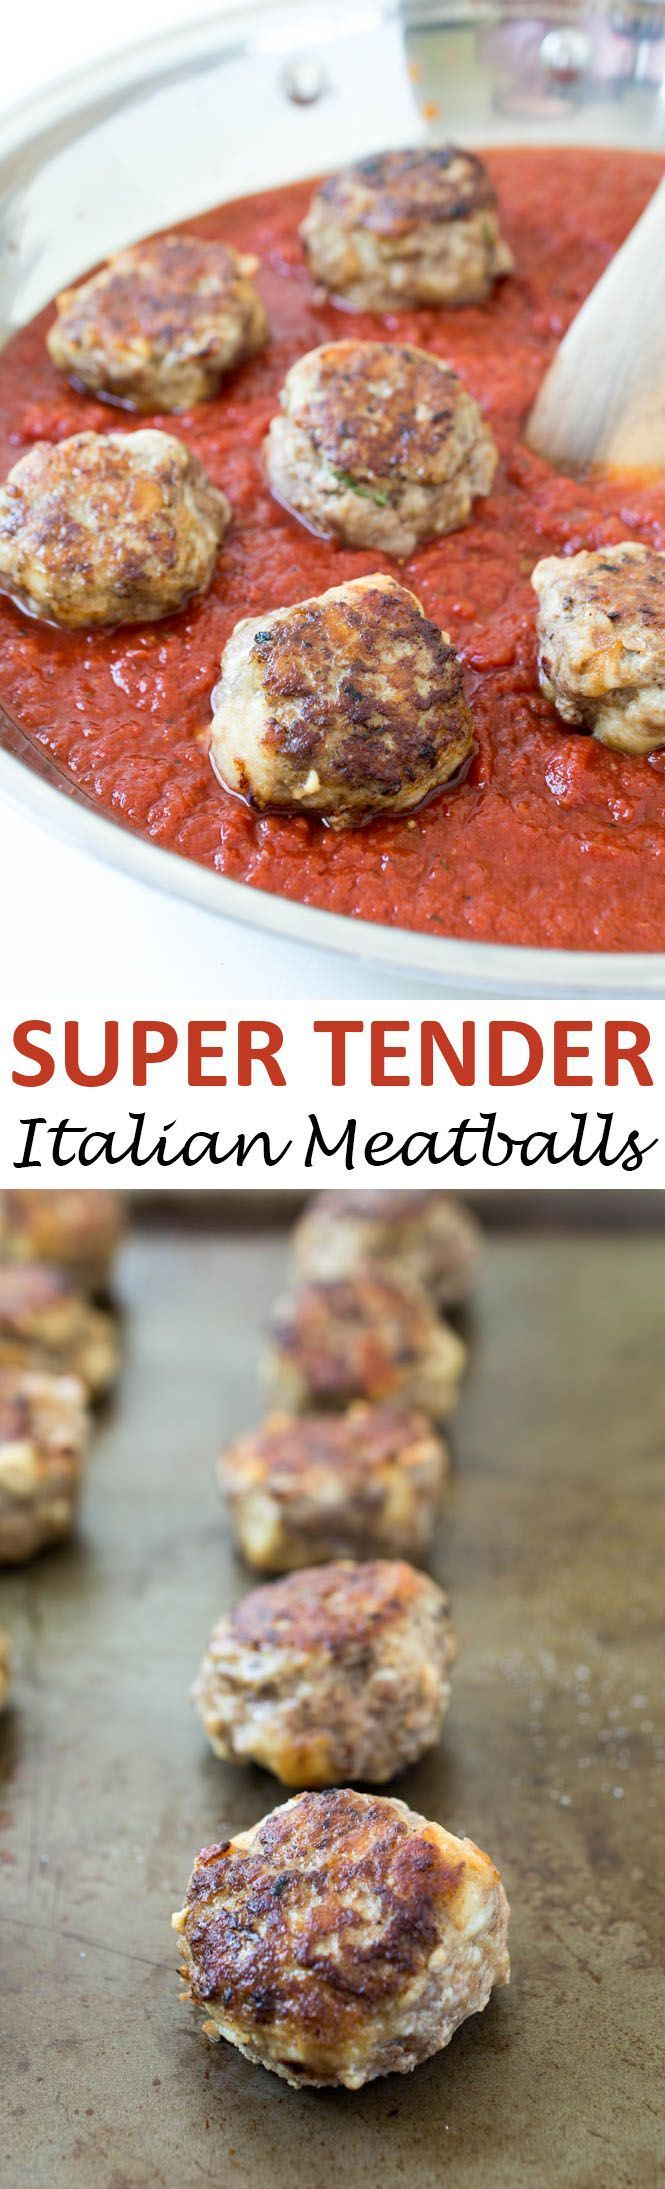 Super Tender Slow Cooker Italian Meatballs. Loaded with Parmesan cheese, fresh parsley and garlic. They melt in your mouth and are incredibly tender. Simmered low and slow for 4 hours! | chefsavvy.com #recipe #tender #Italian #meatballs